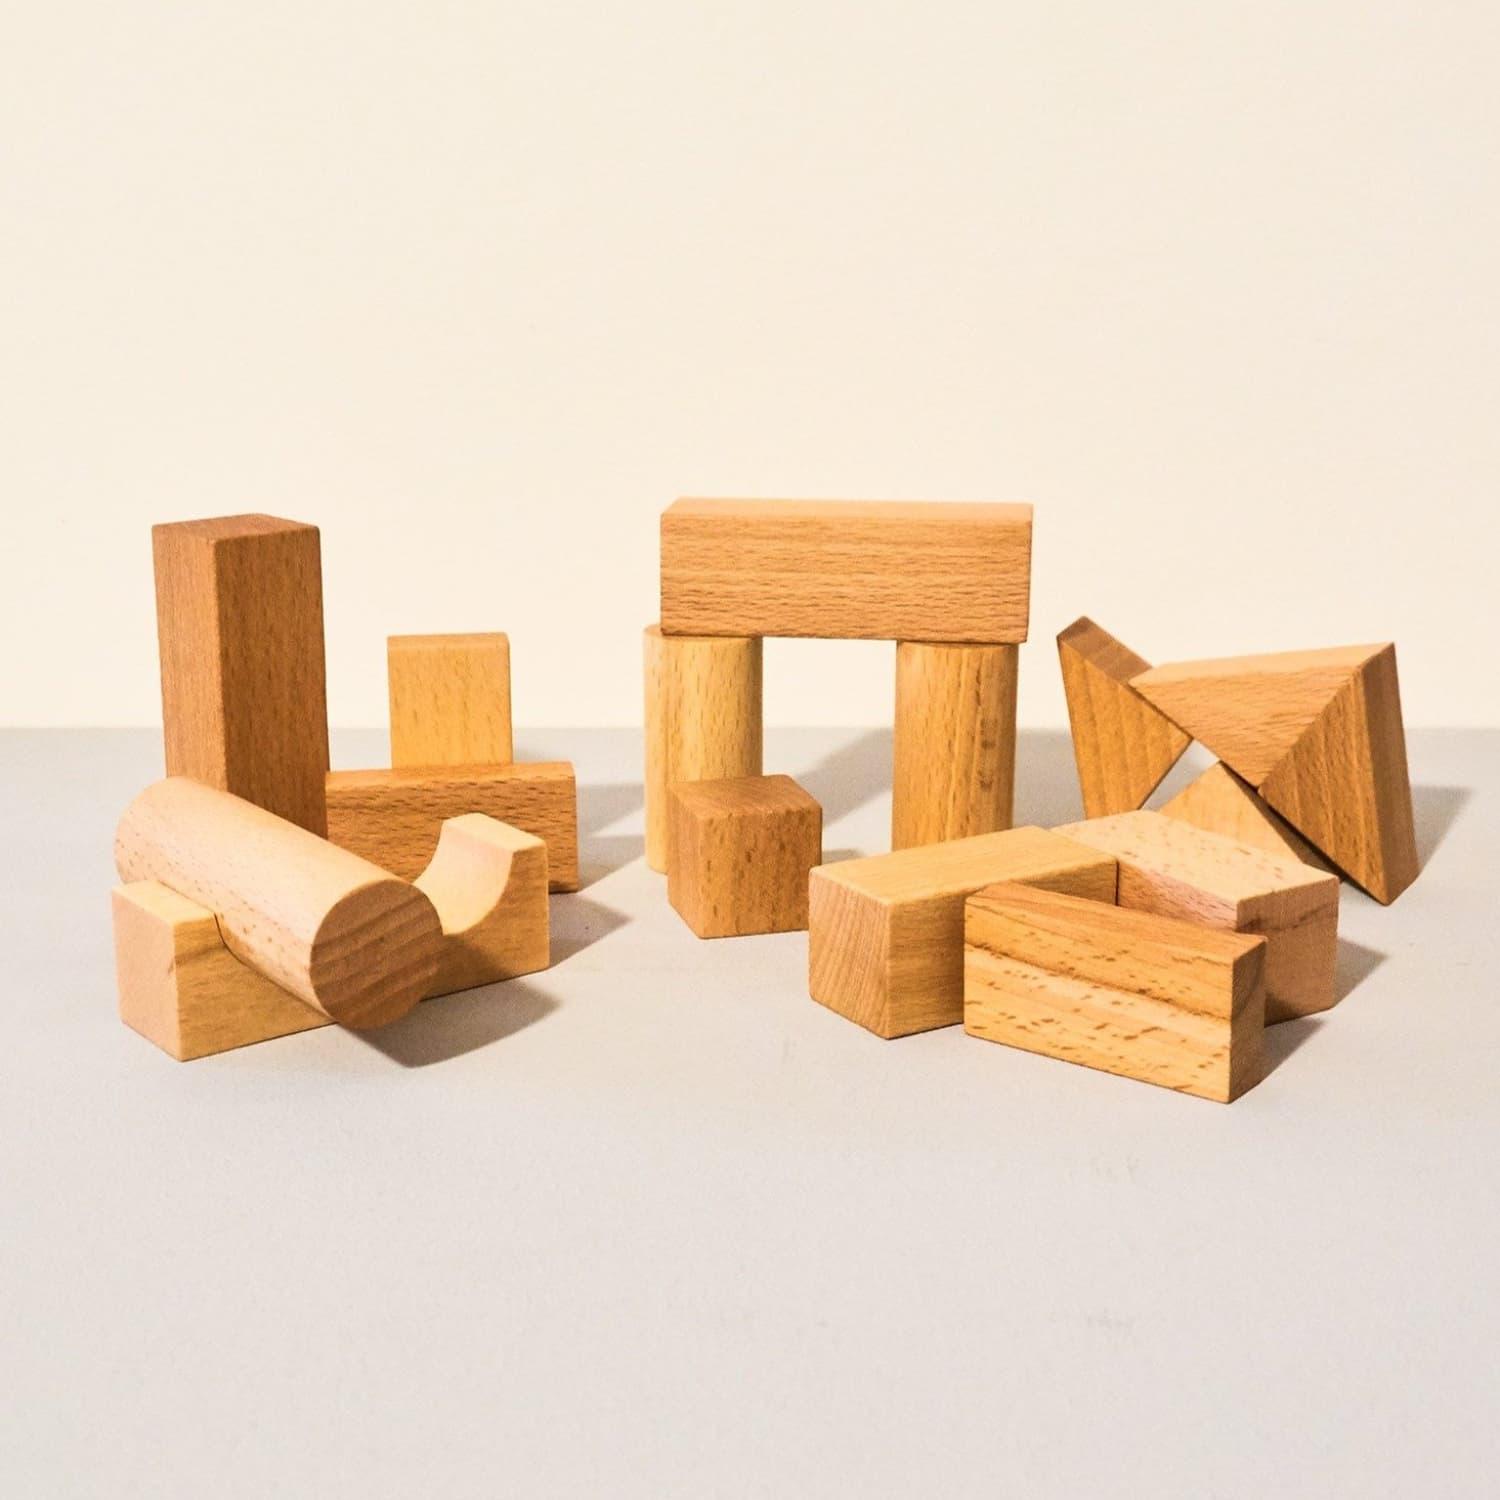 wooden-baby-organic-building-blocks